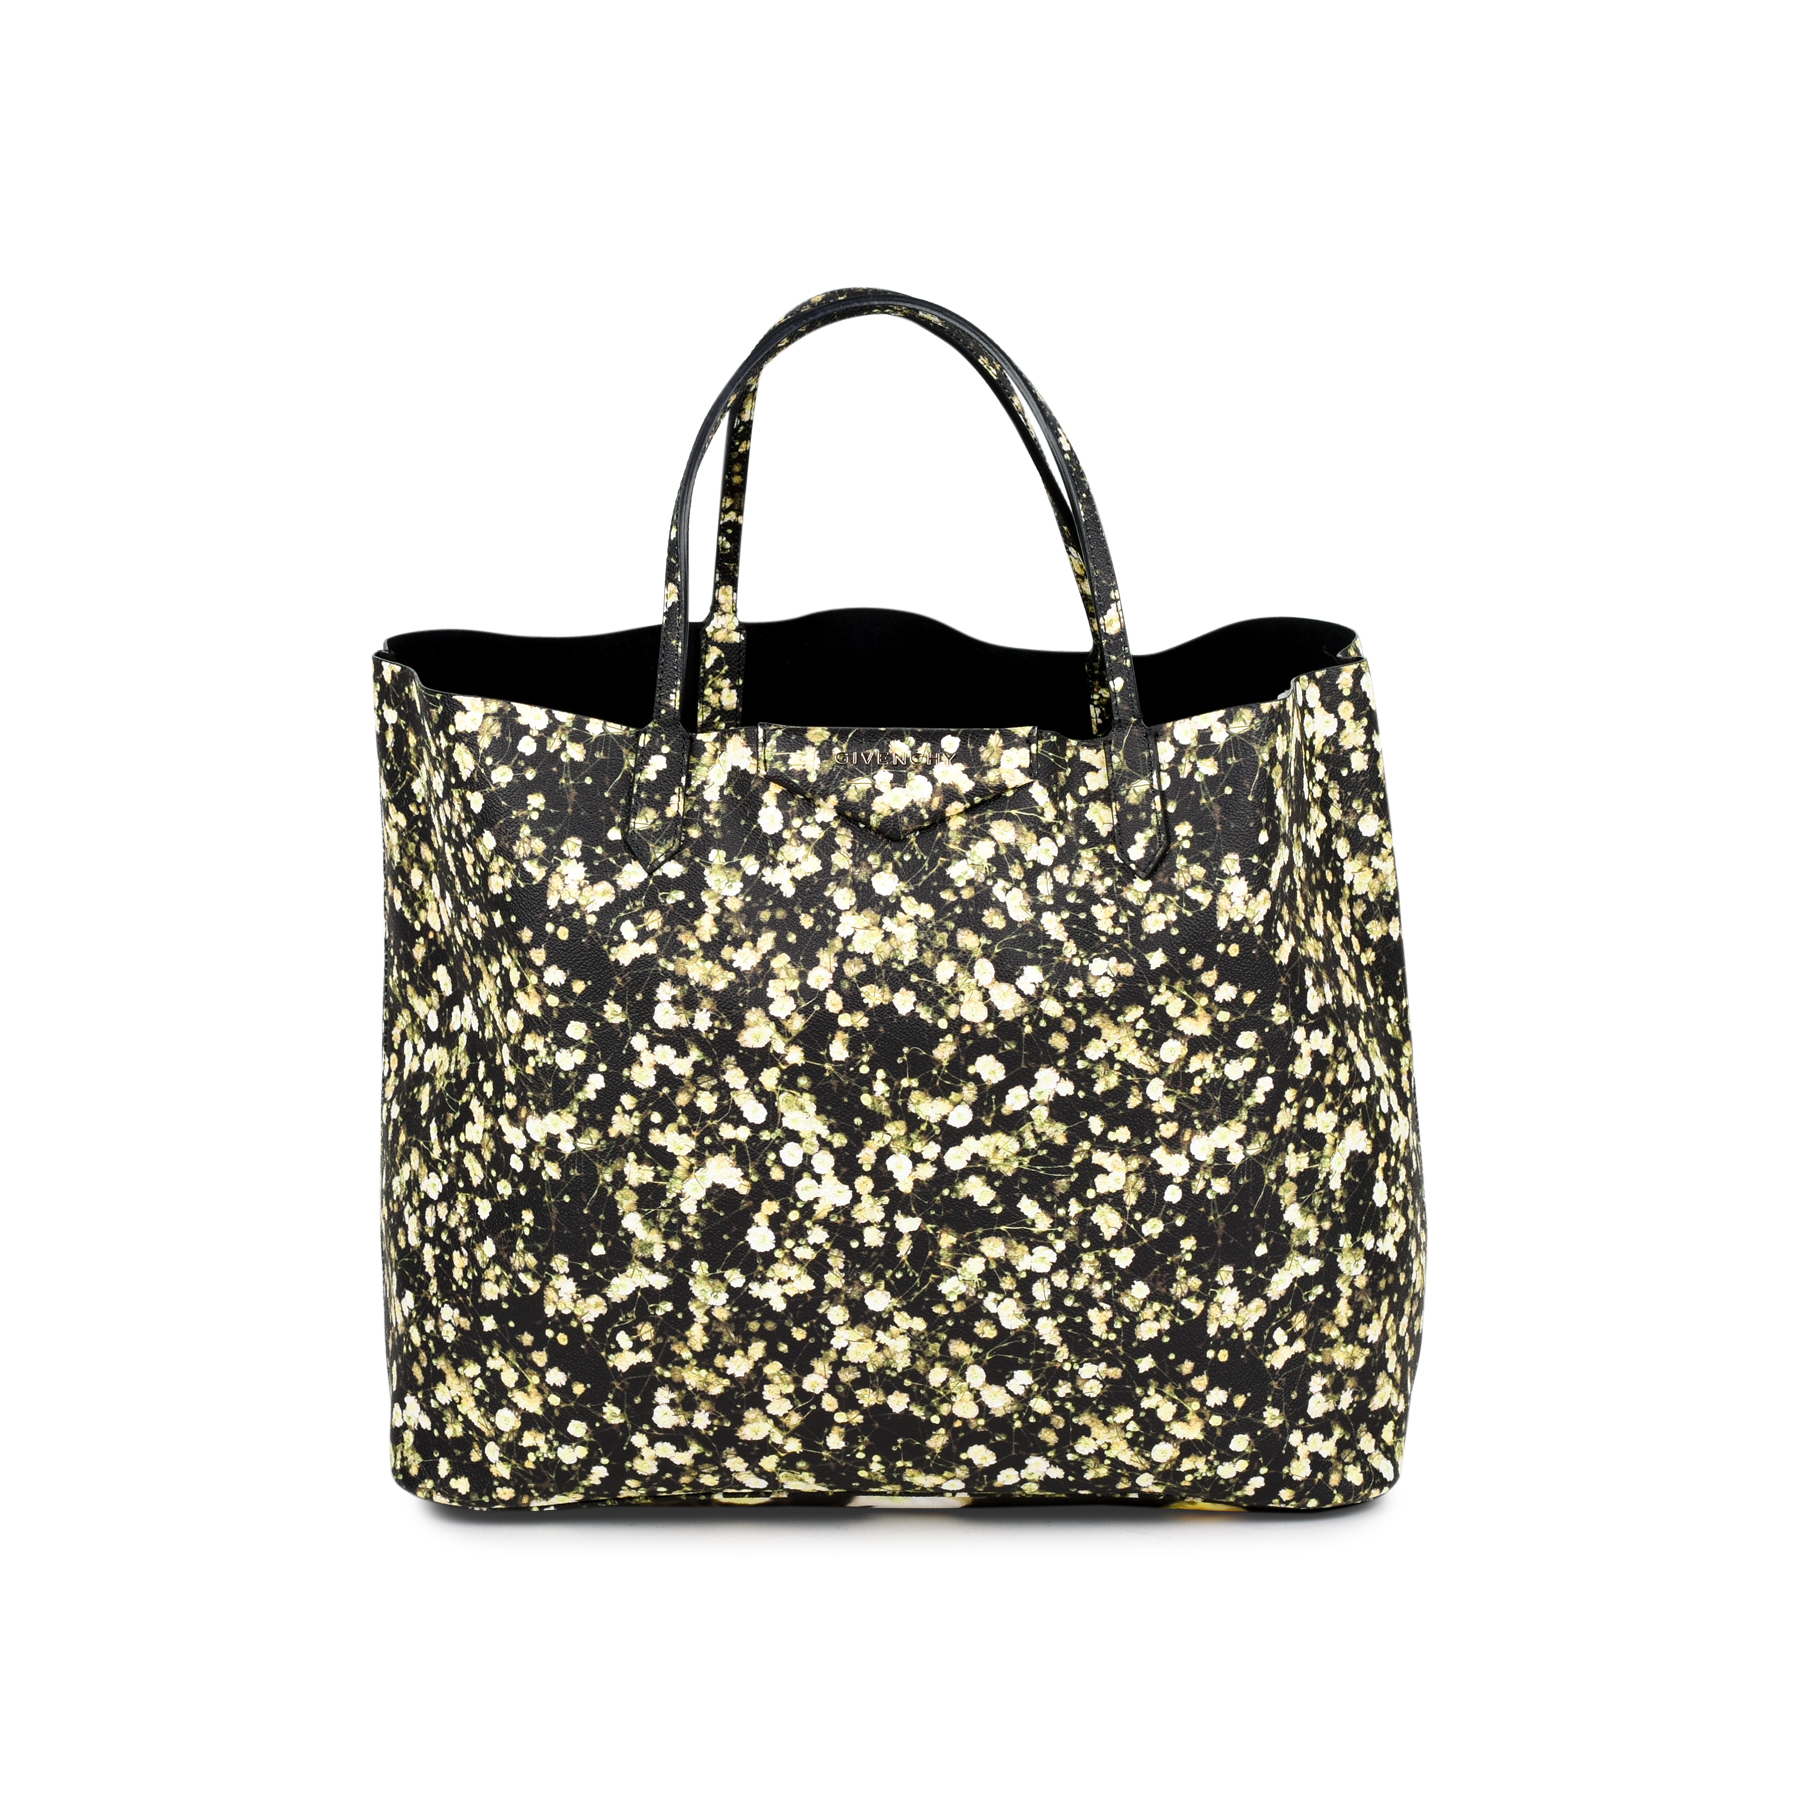 8e1a9fcc908 Authentic Second Hand Givenchy Antigona Tote Bag (PSS-435-00018) - THE  FIFTH COLLECTION